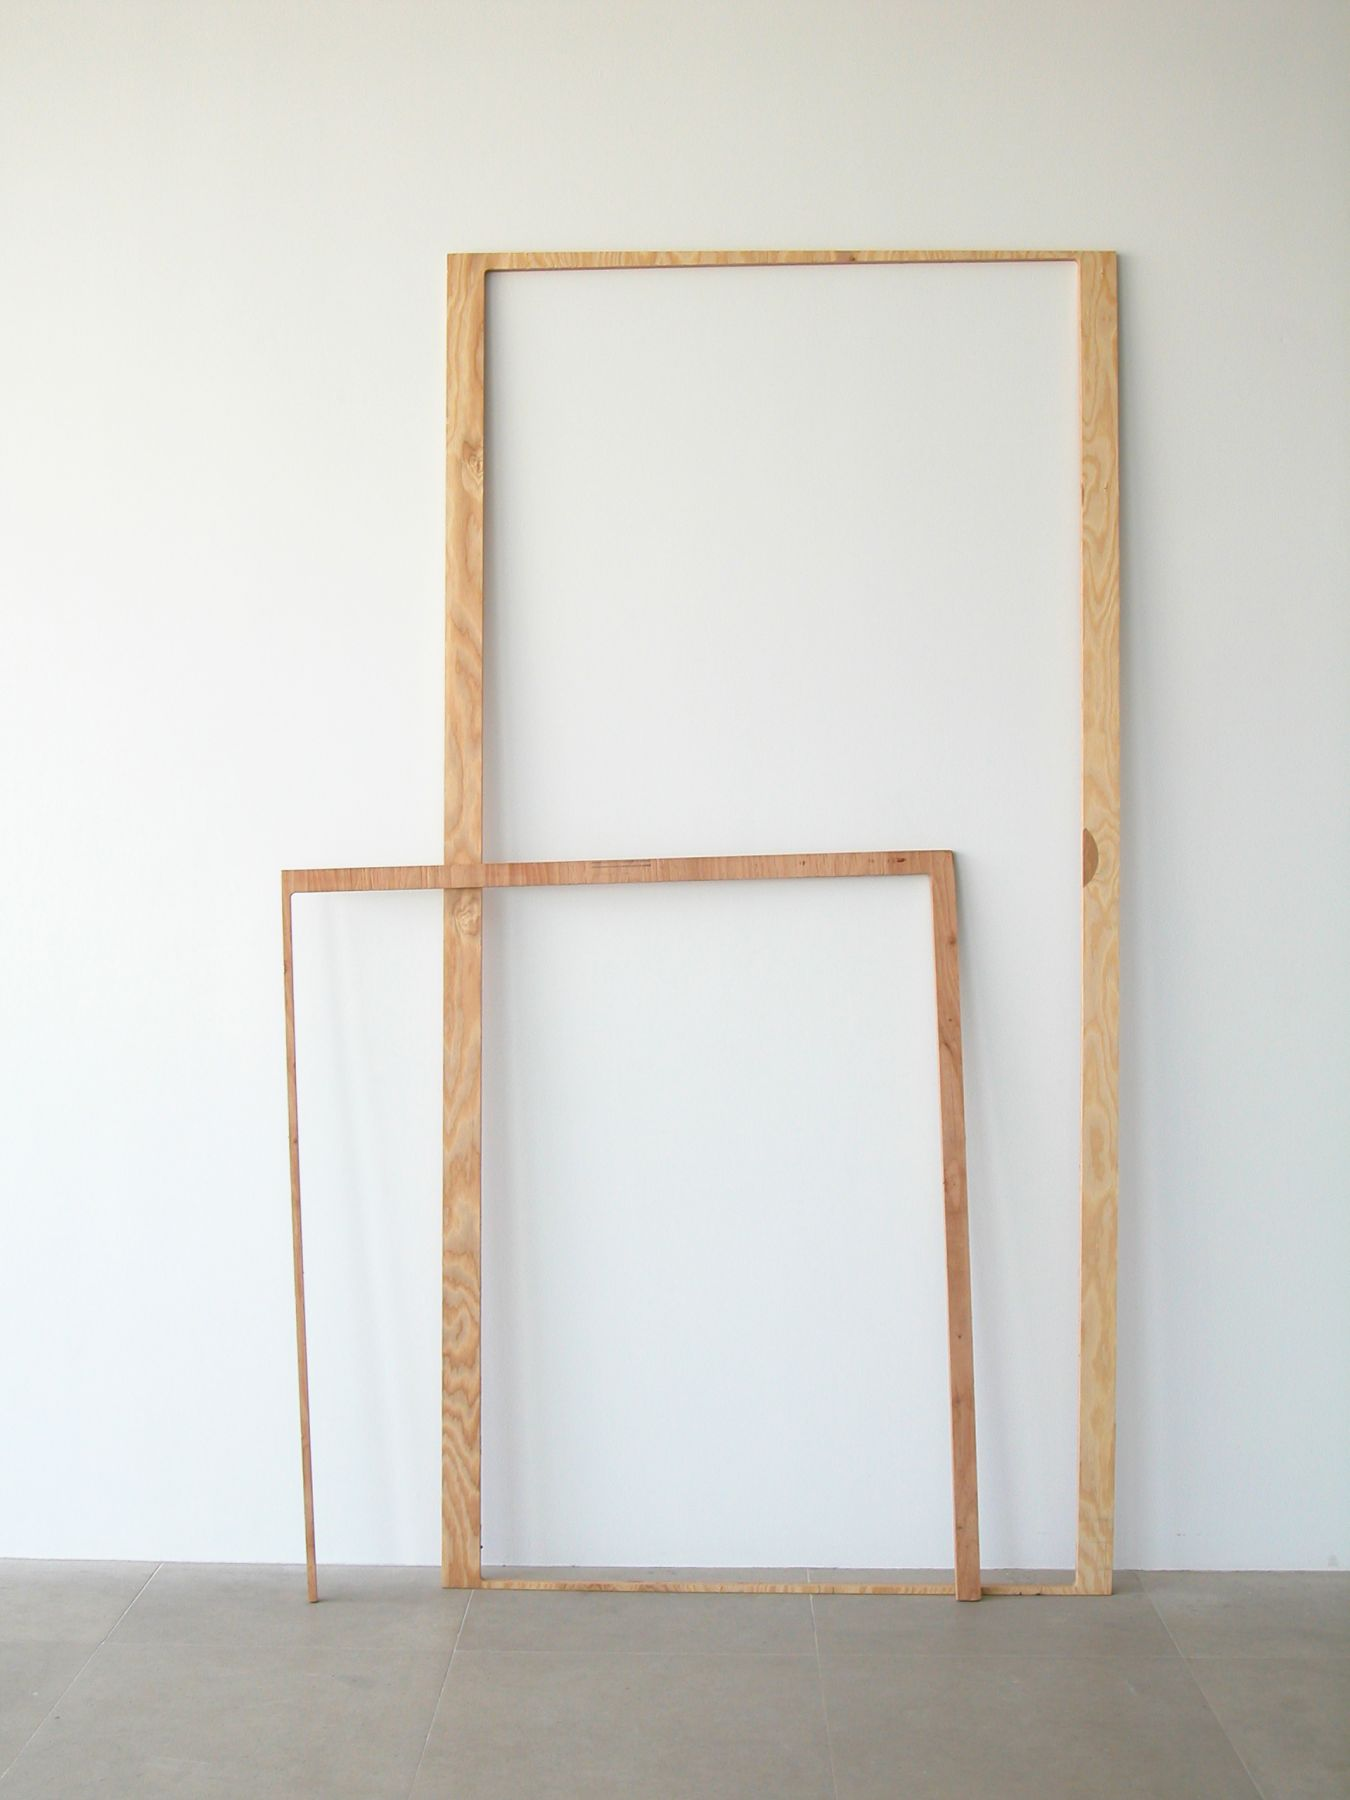 Side Show, Side Show, 2008, Wood, 95 x 59.5 x 8 inches